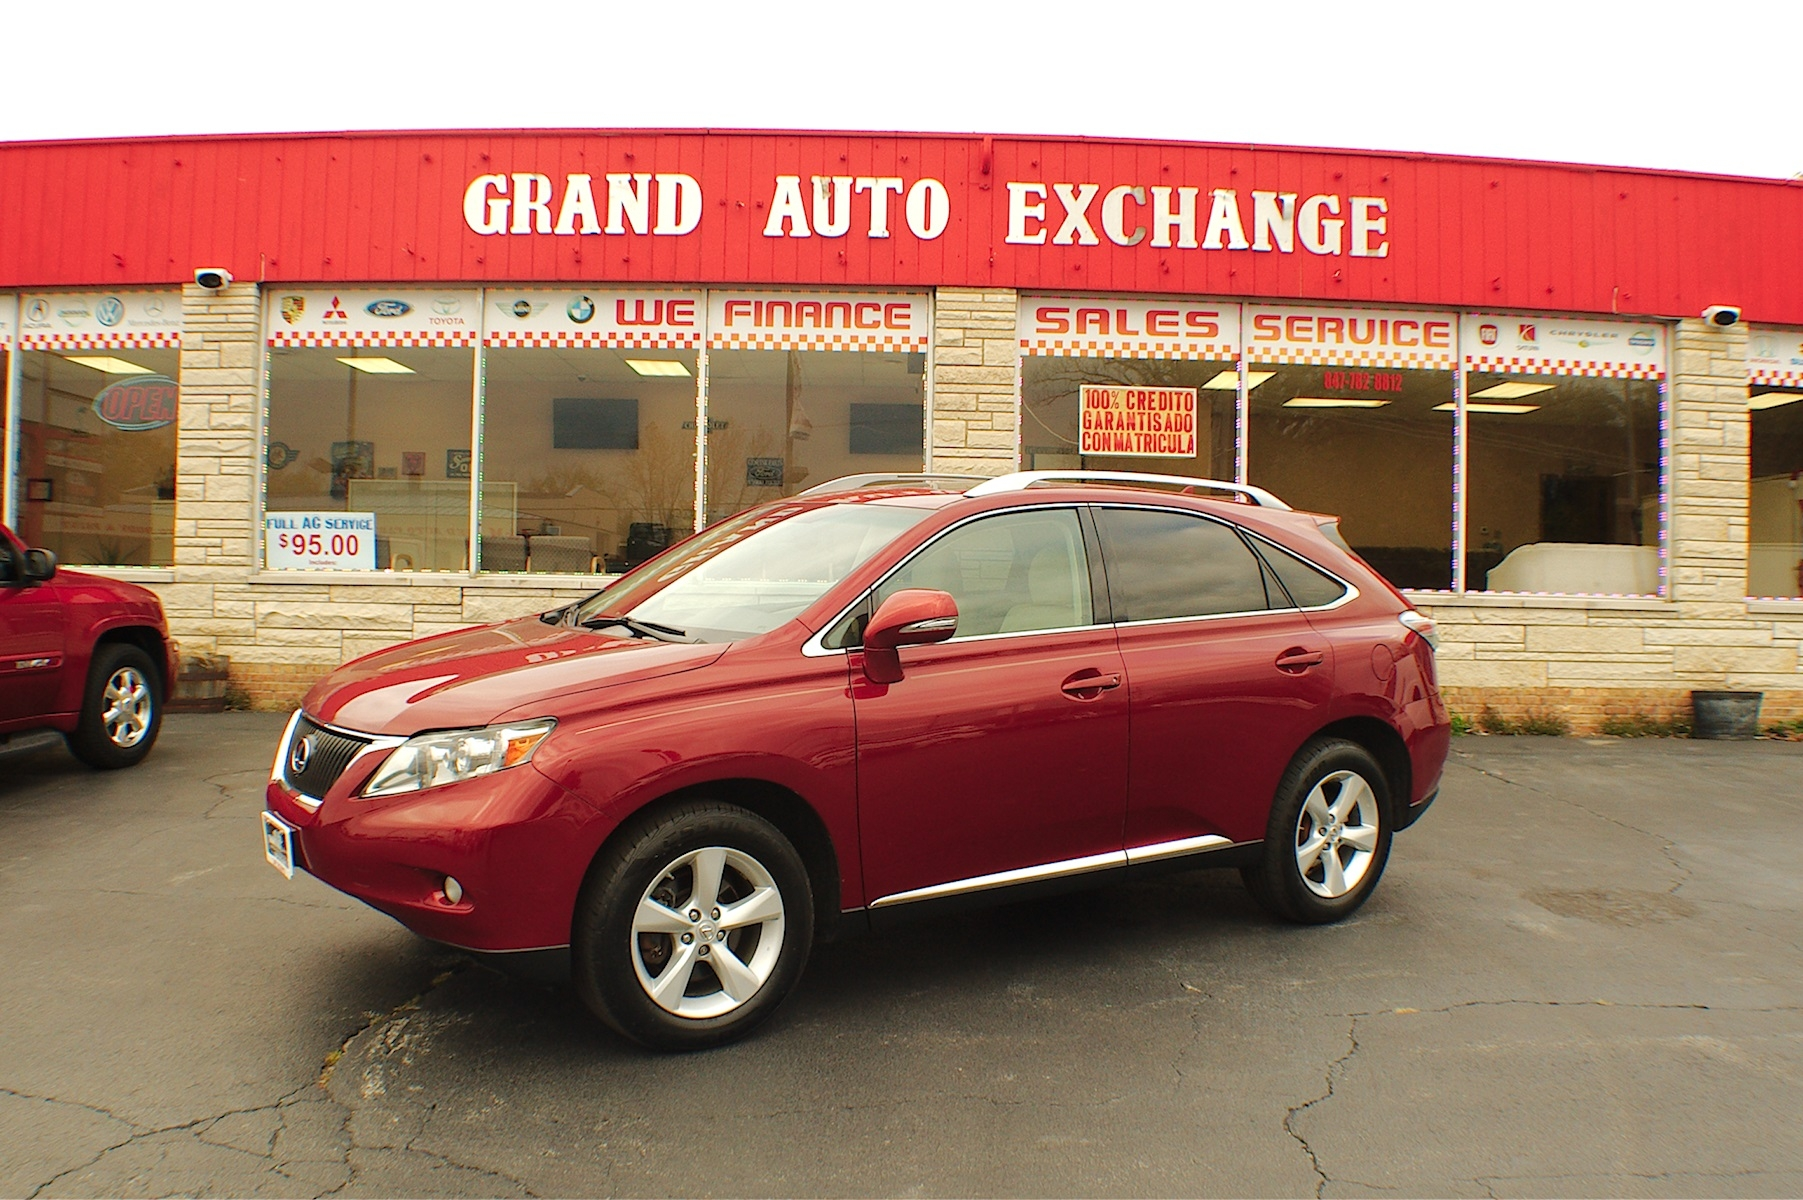 2010 Lexus RX350 AWD Red 4x4 Used SUV Sale